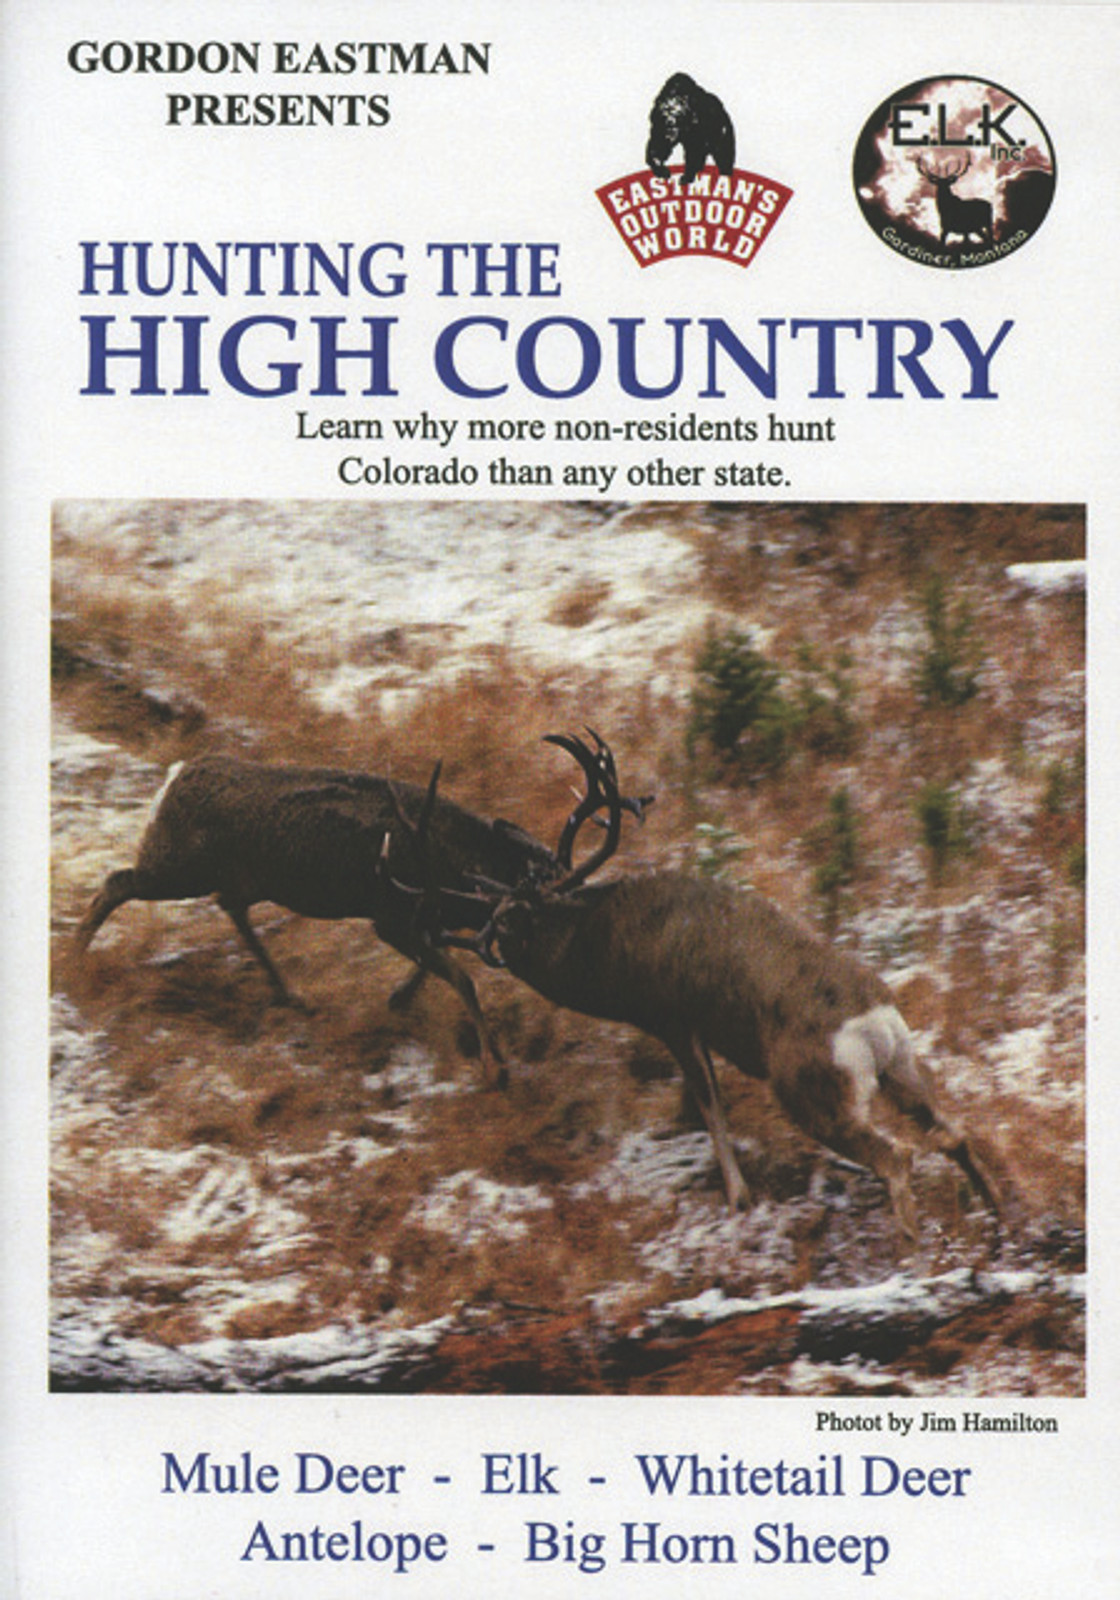 HUNTING THE HIGH COUNTRY DVD